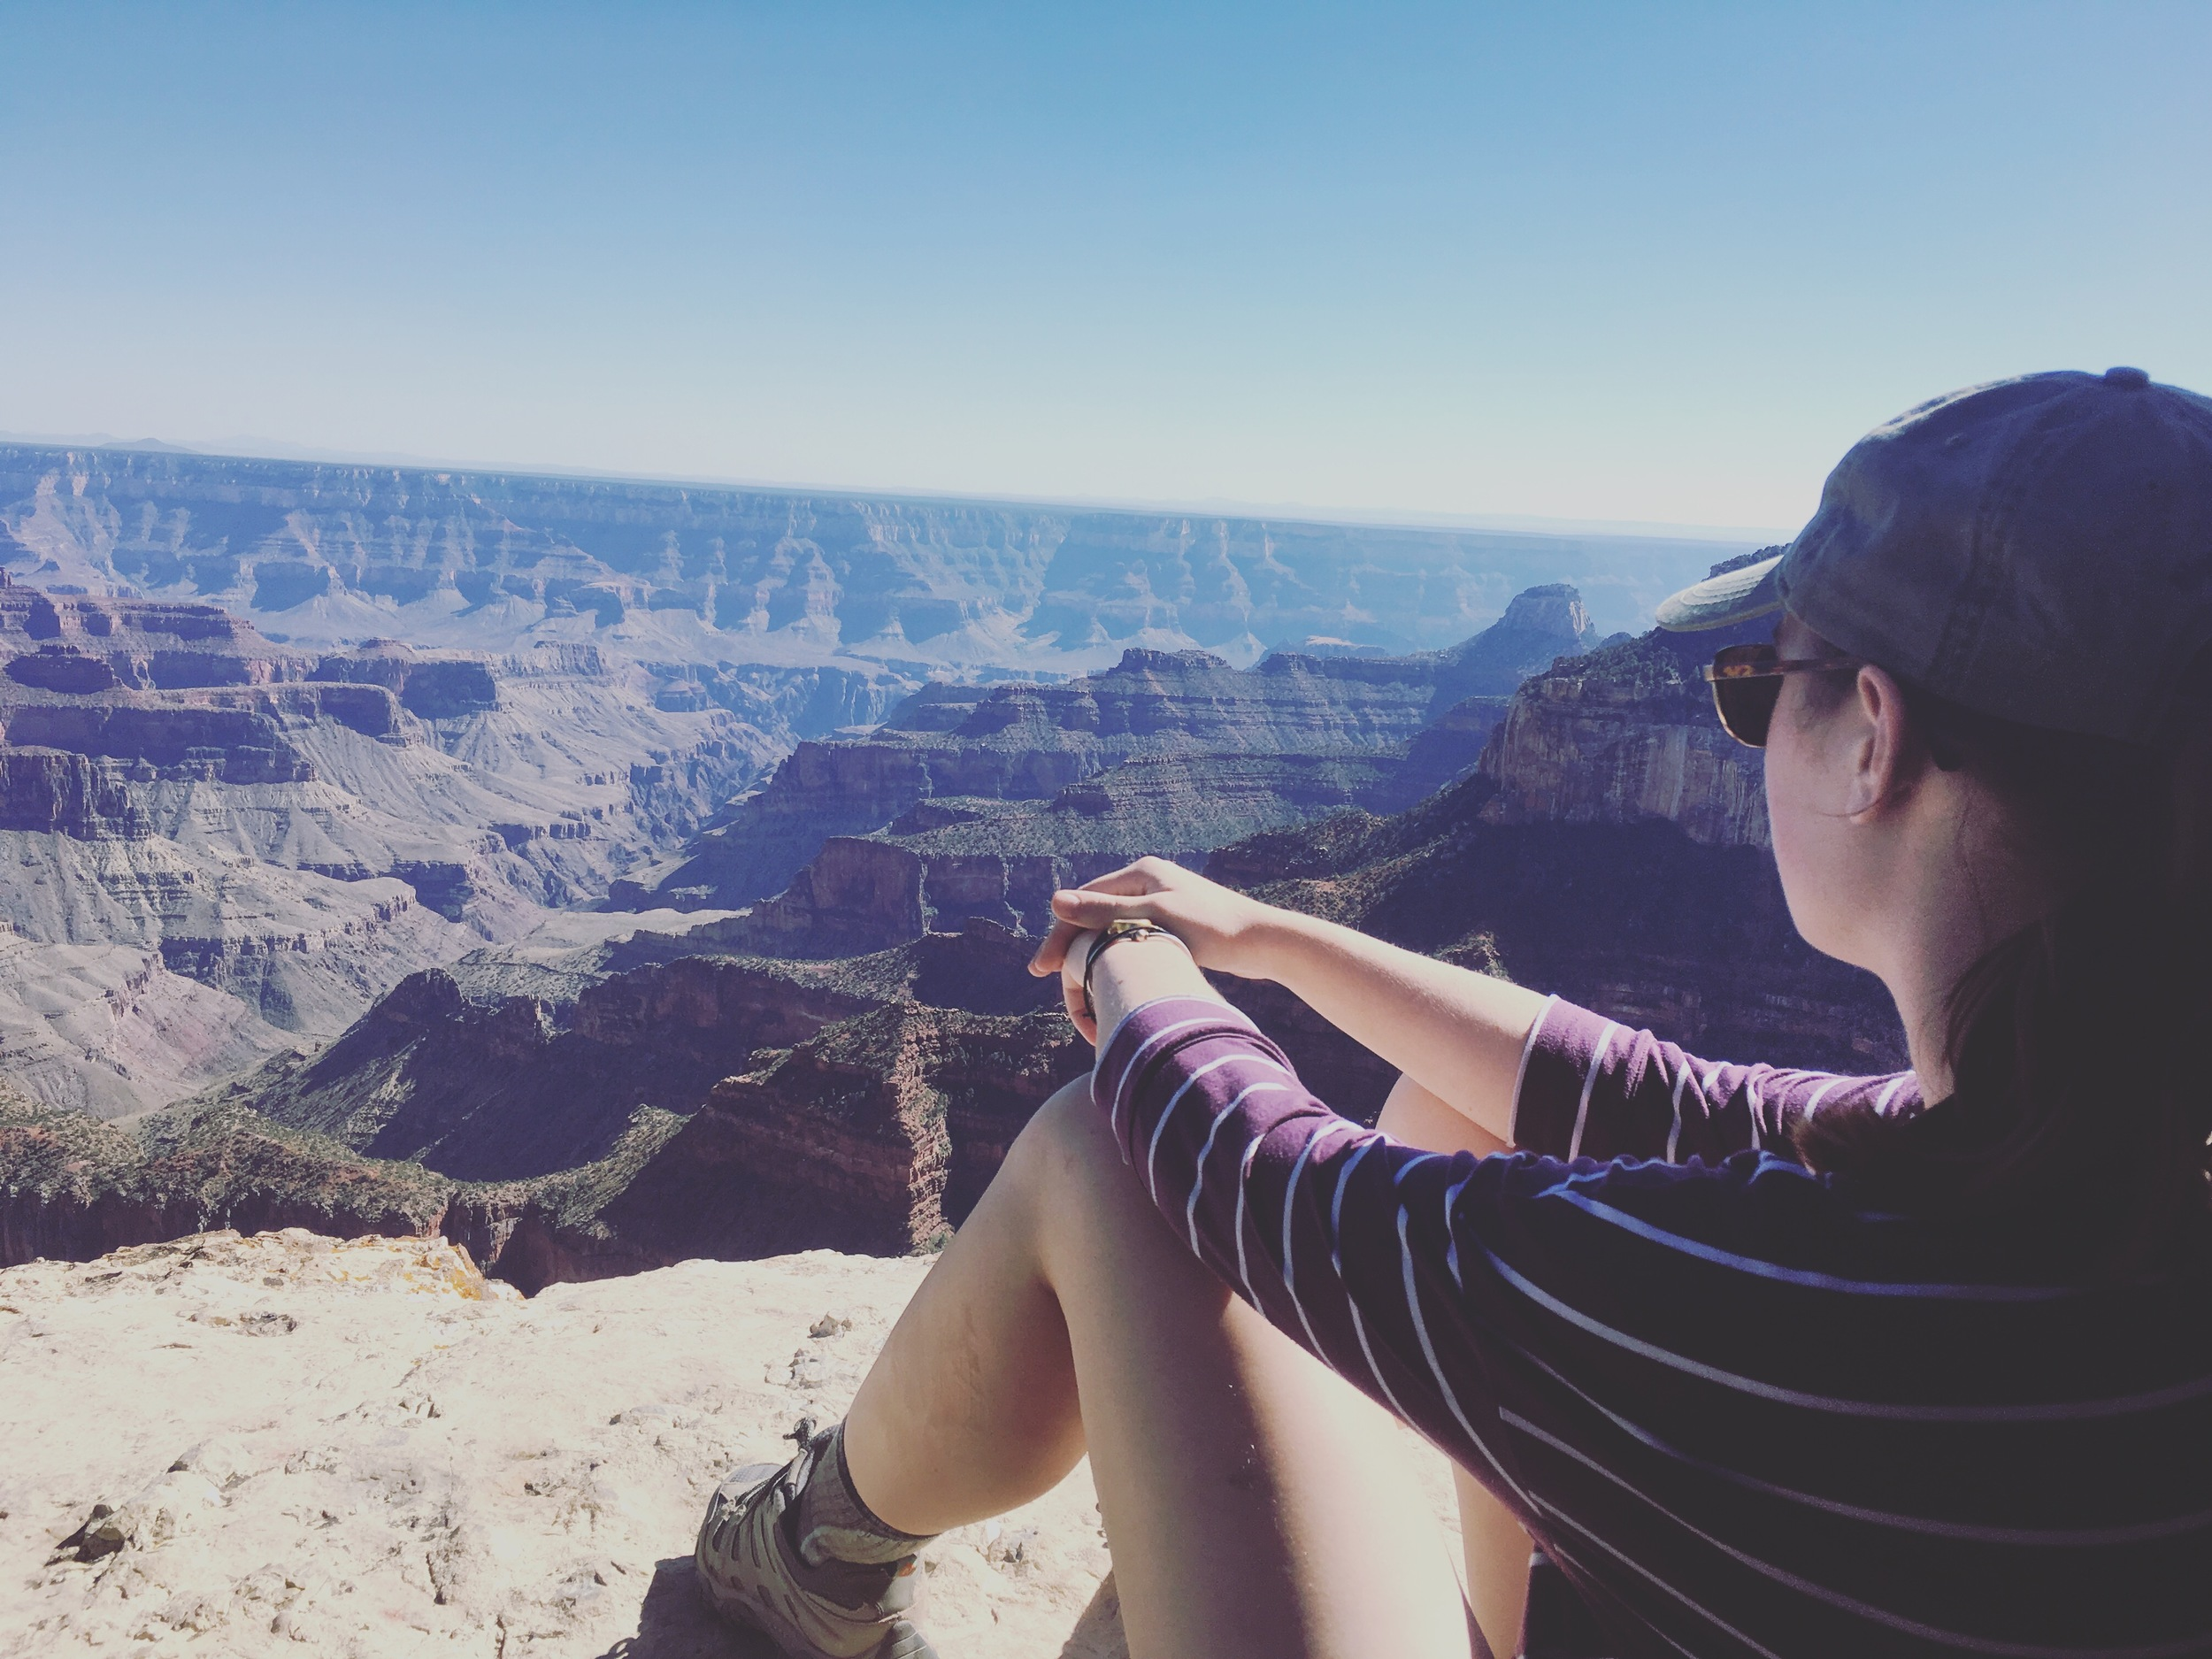 Gazing into the canyon.